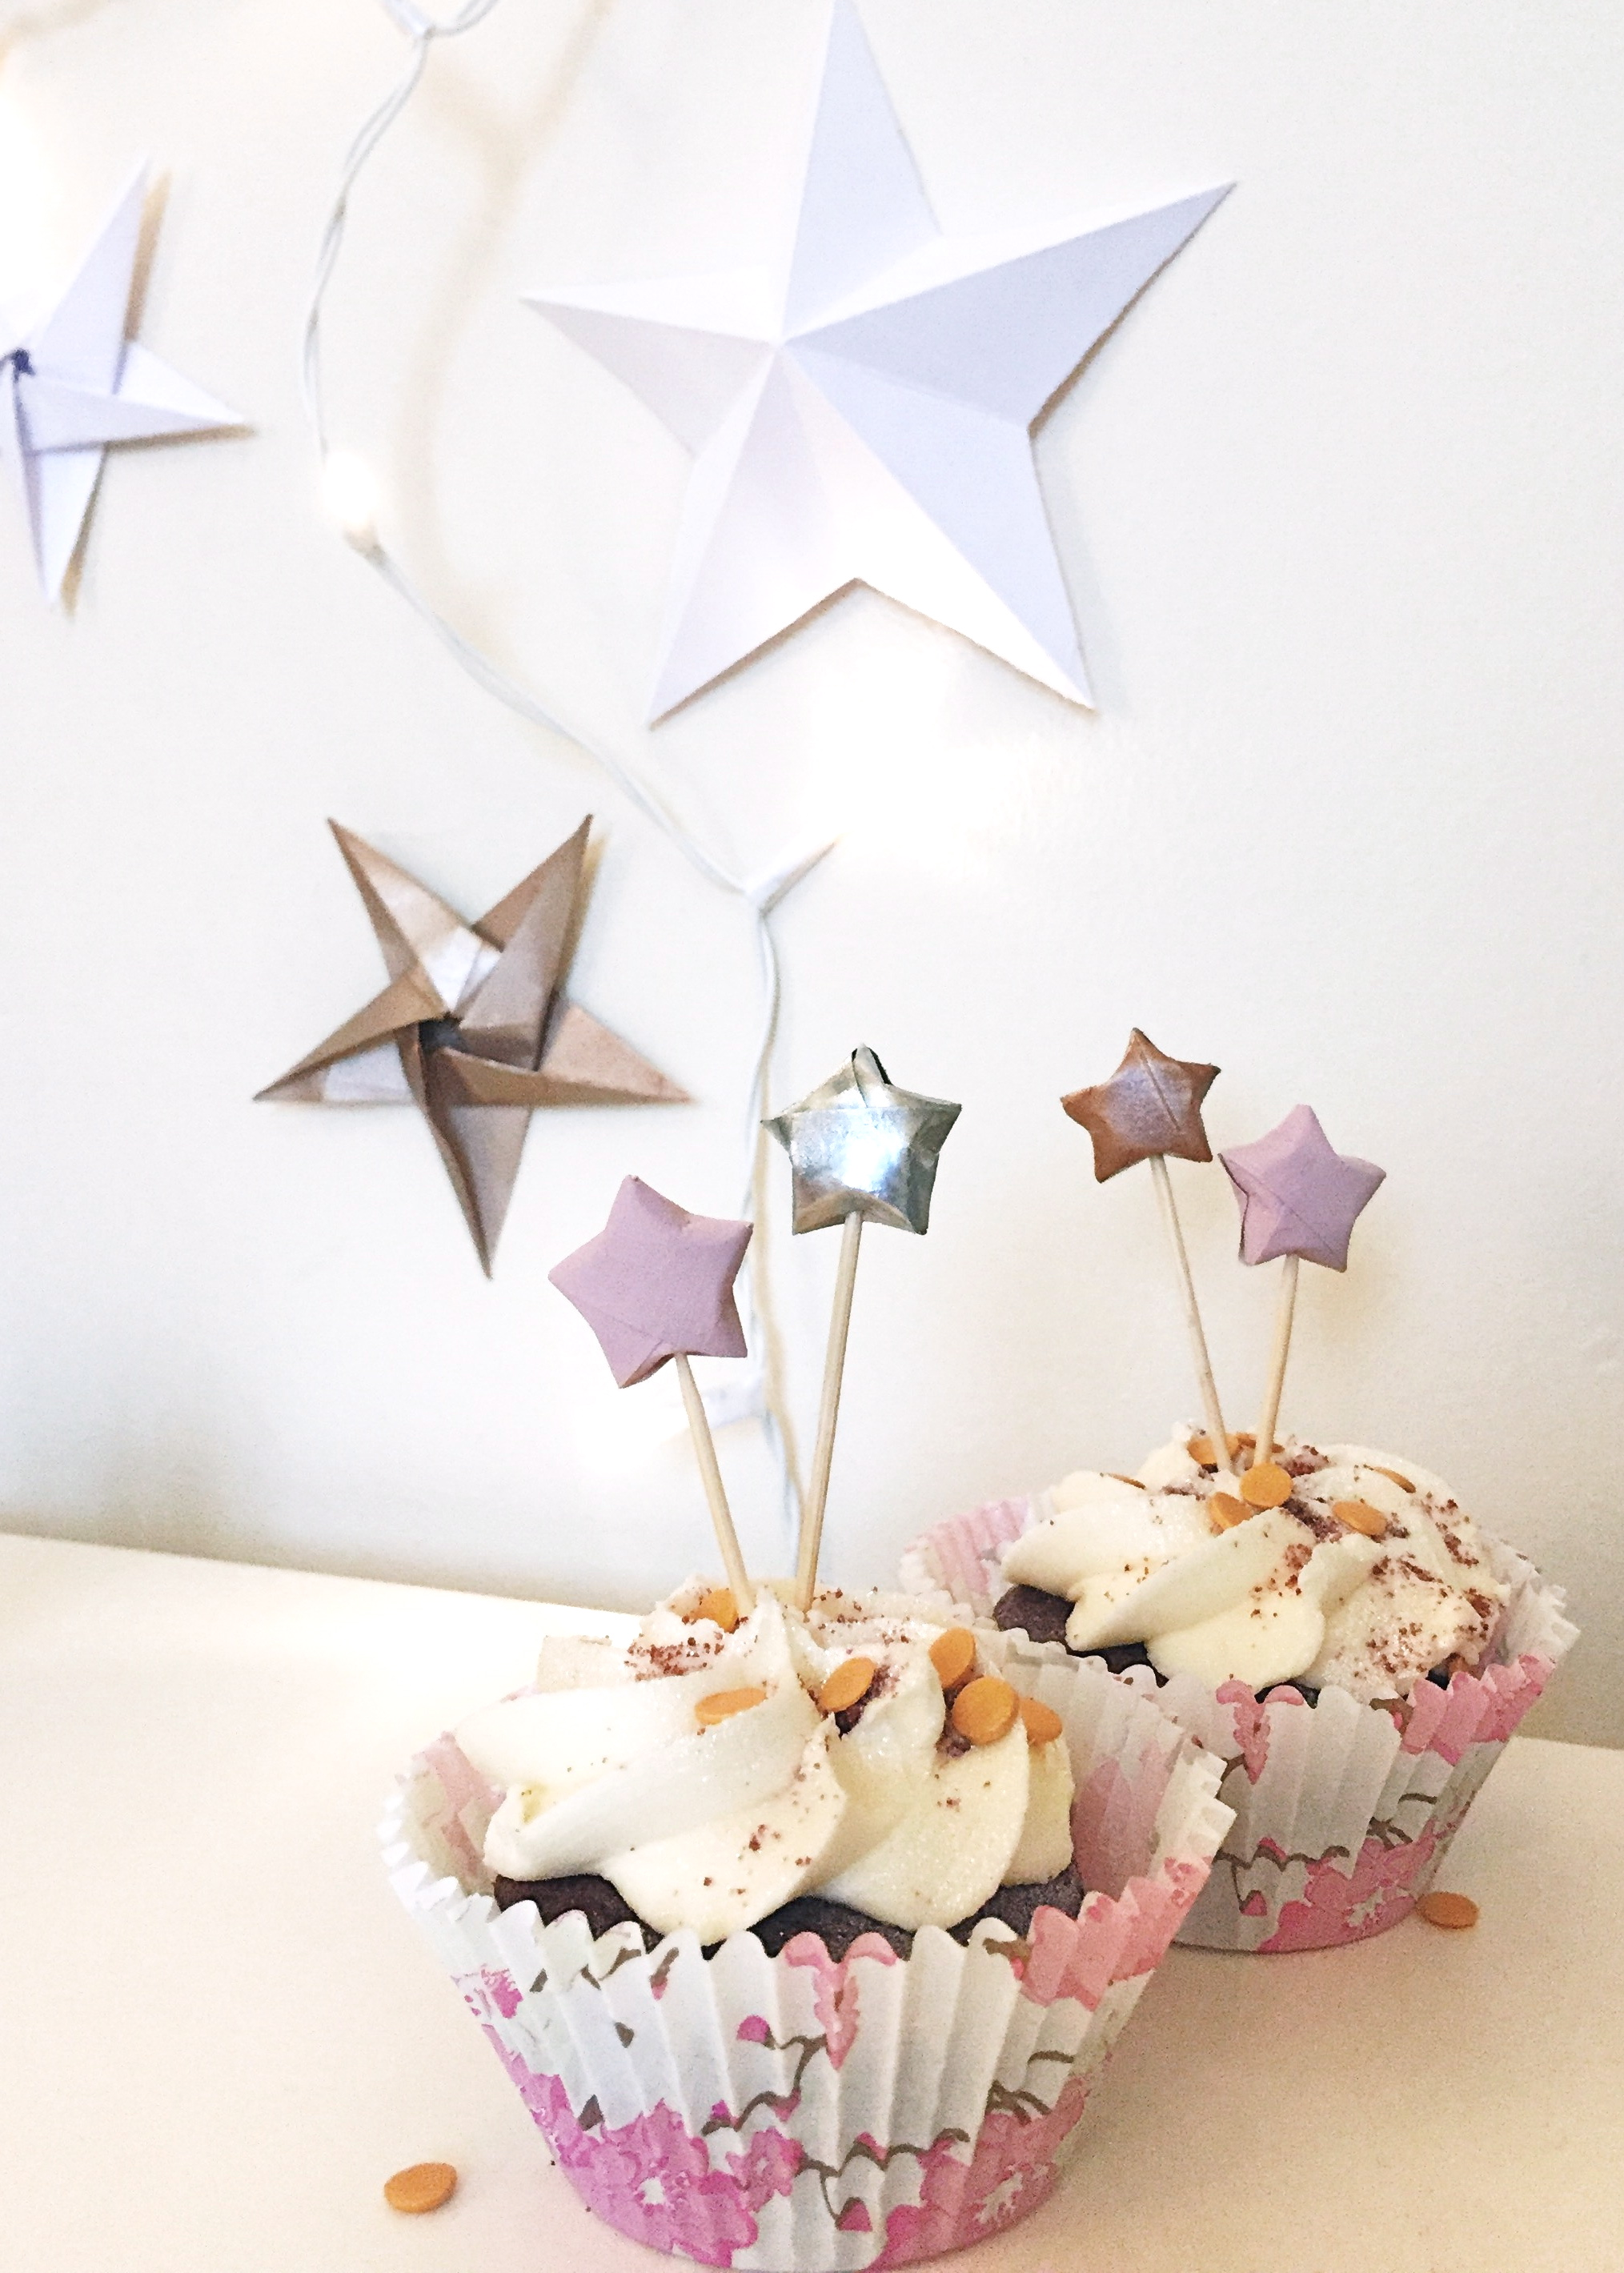 DIY Origami Star Cupcake Toppers by Isoscella